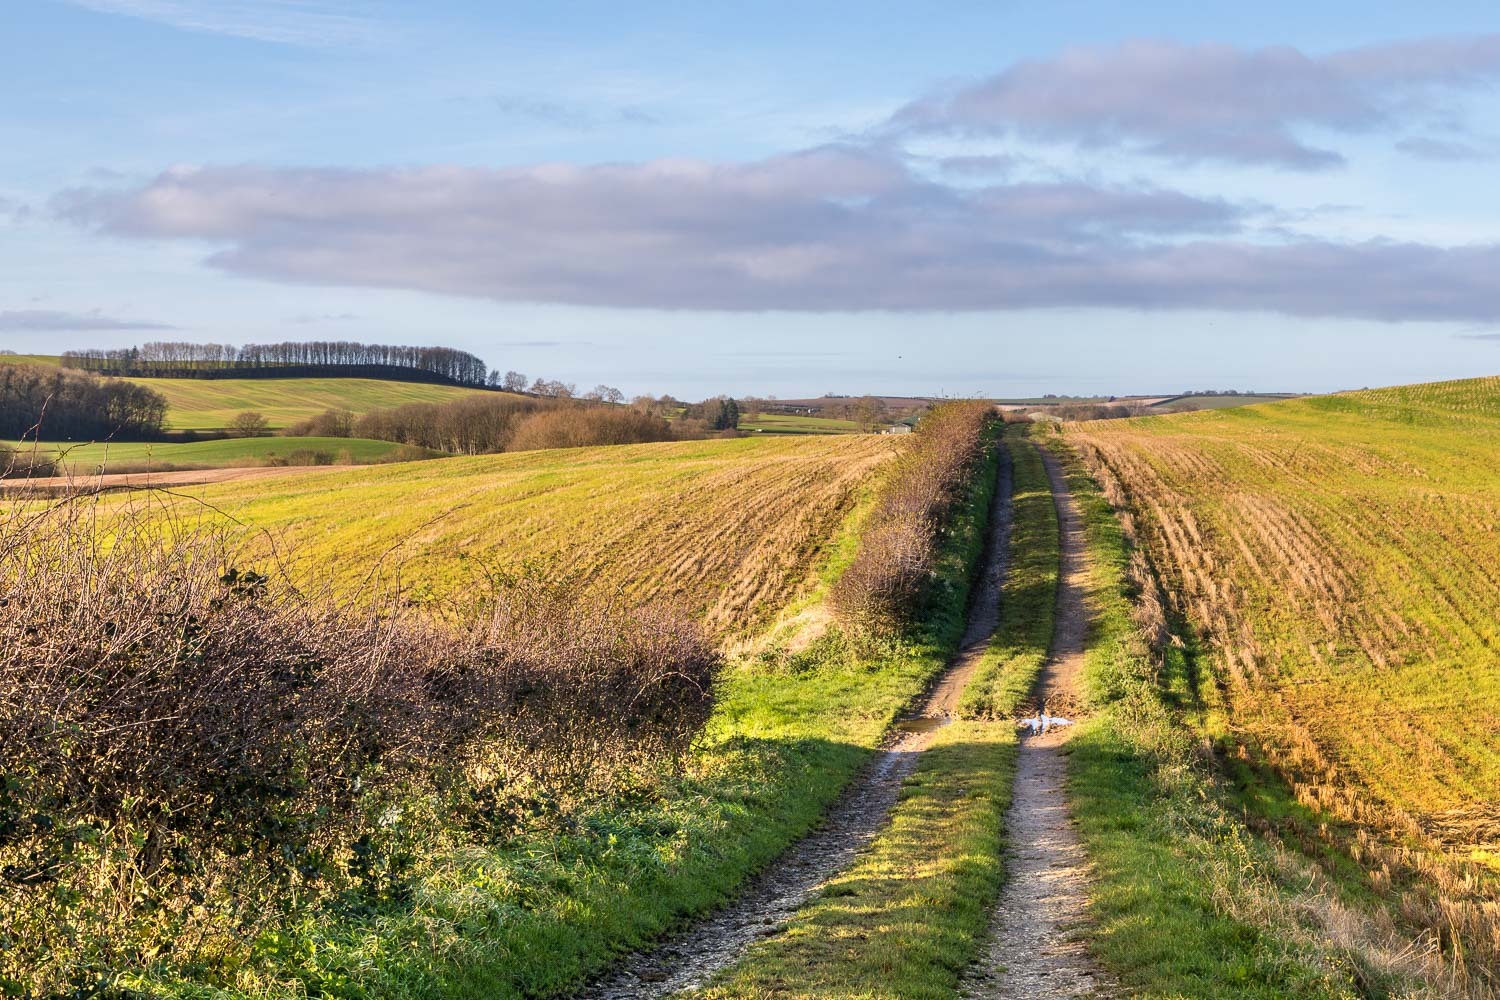 Belchford walk, Platts Lane, Roman salt road